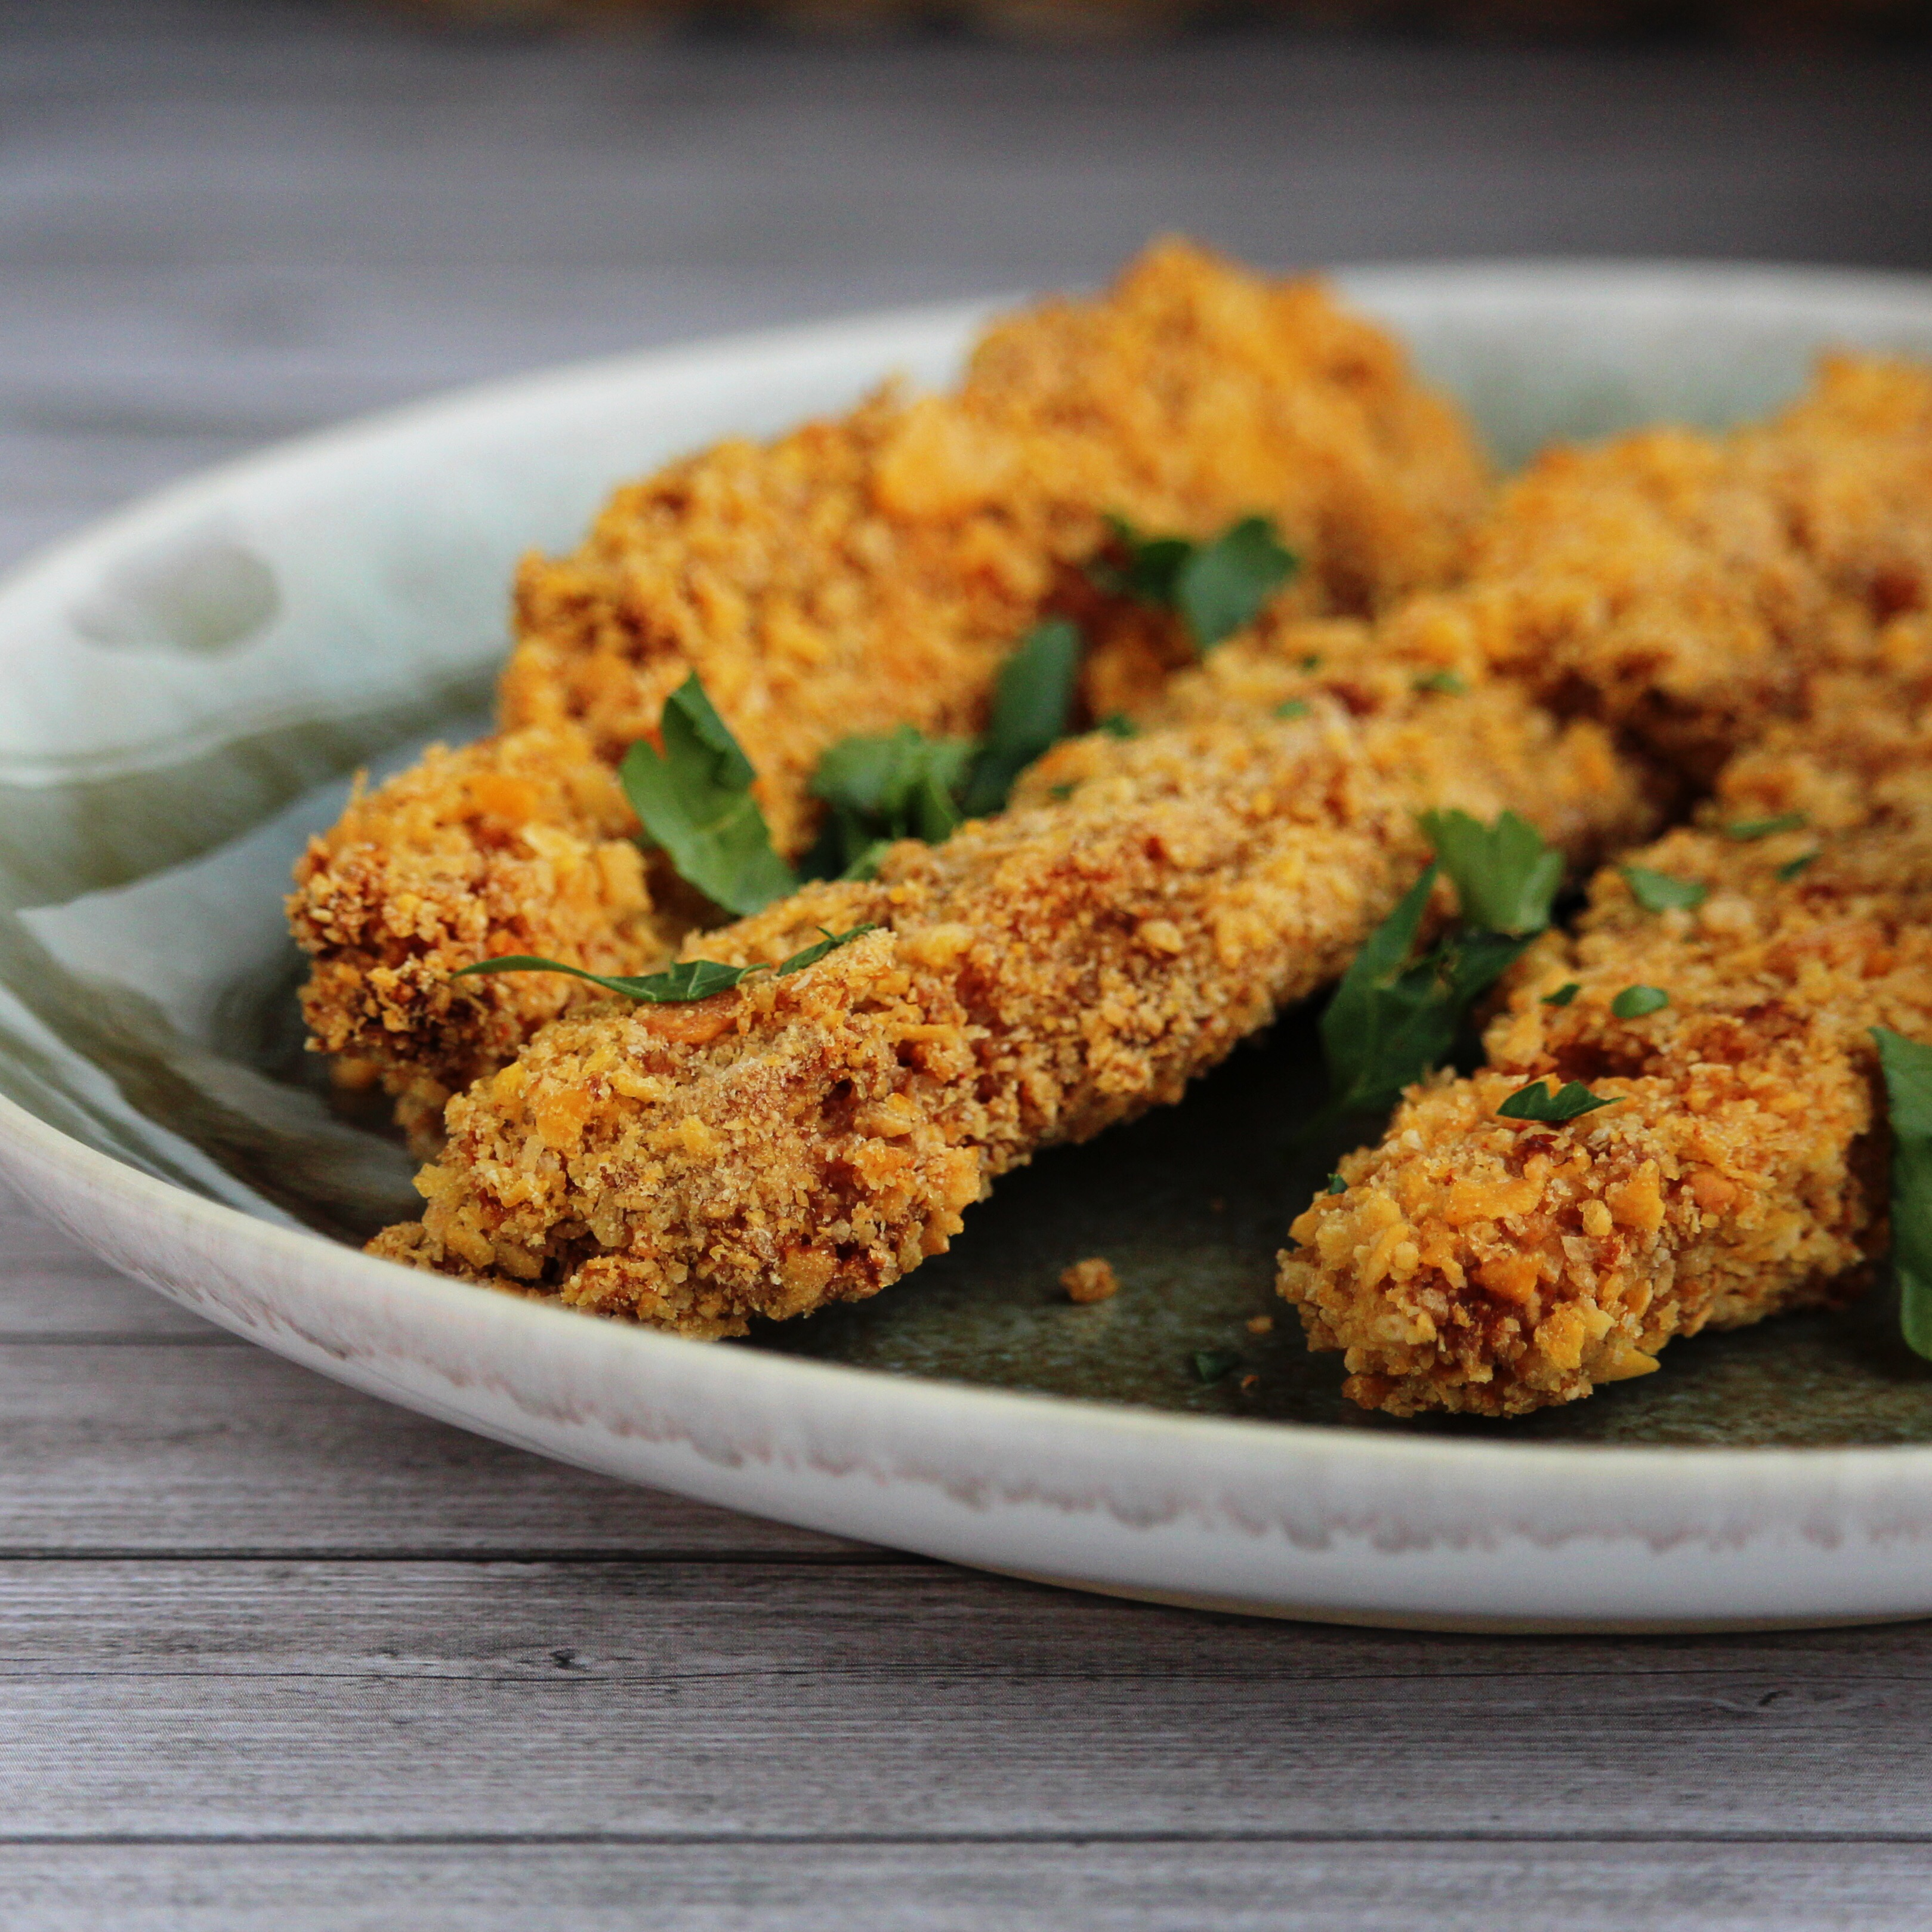 Baked Chicken Thighs Coated With Corn Flake Crumbs